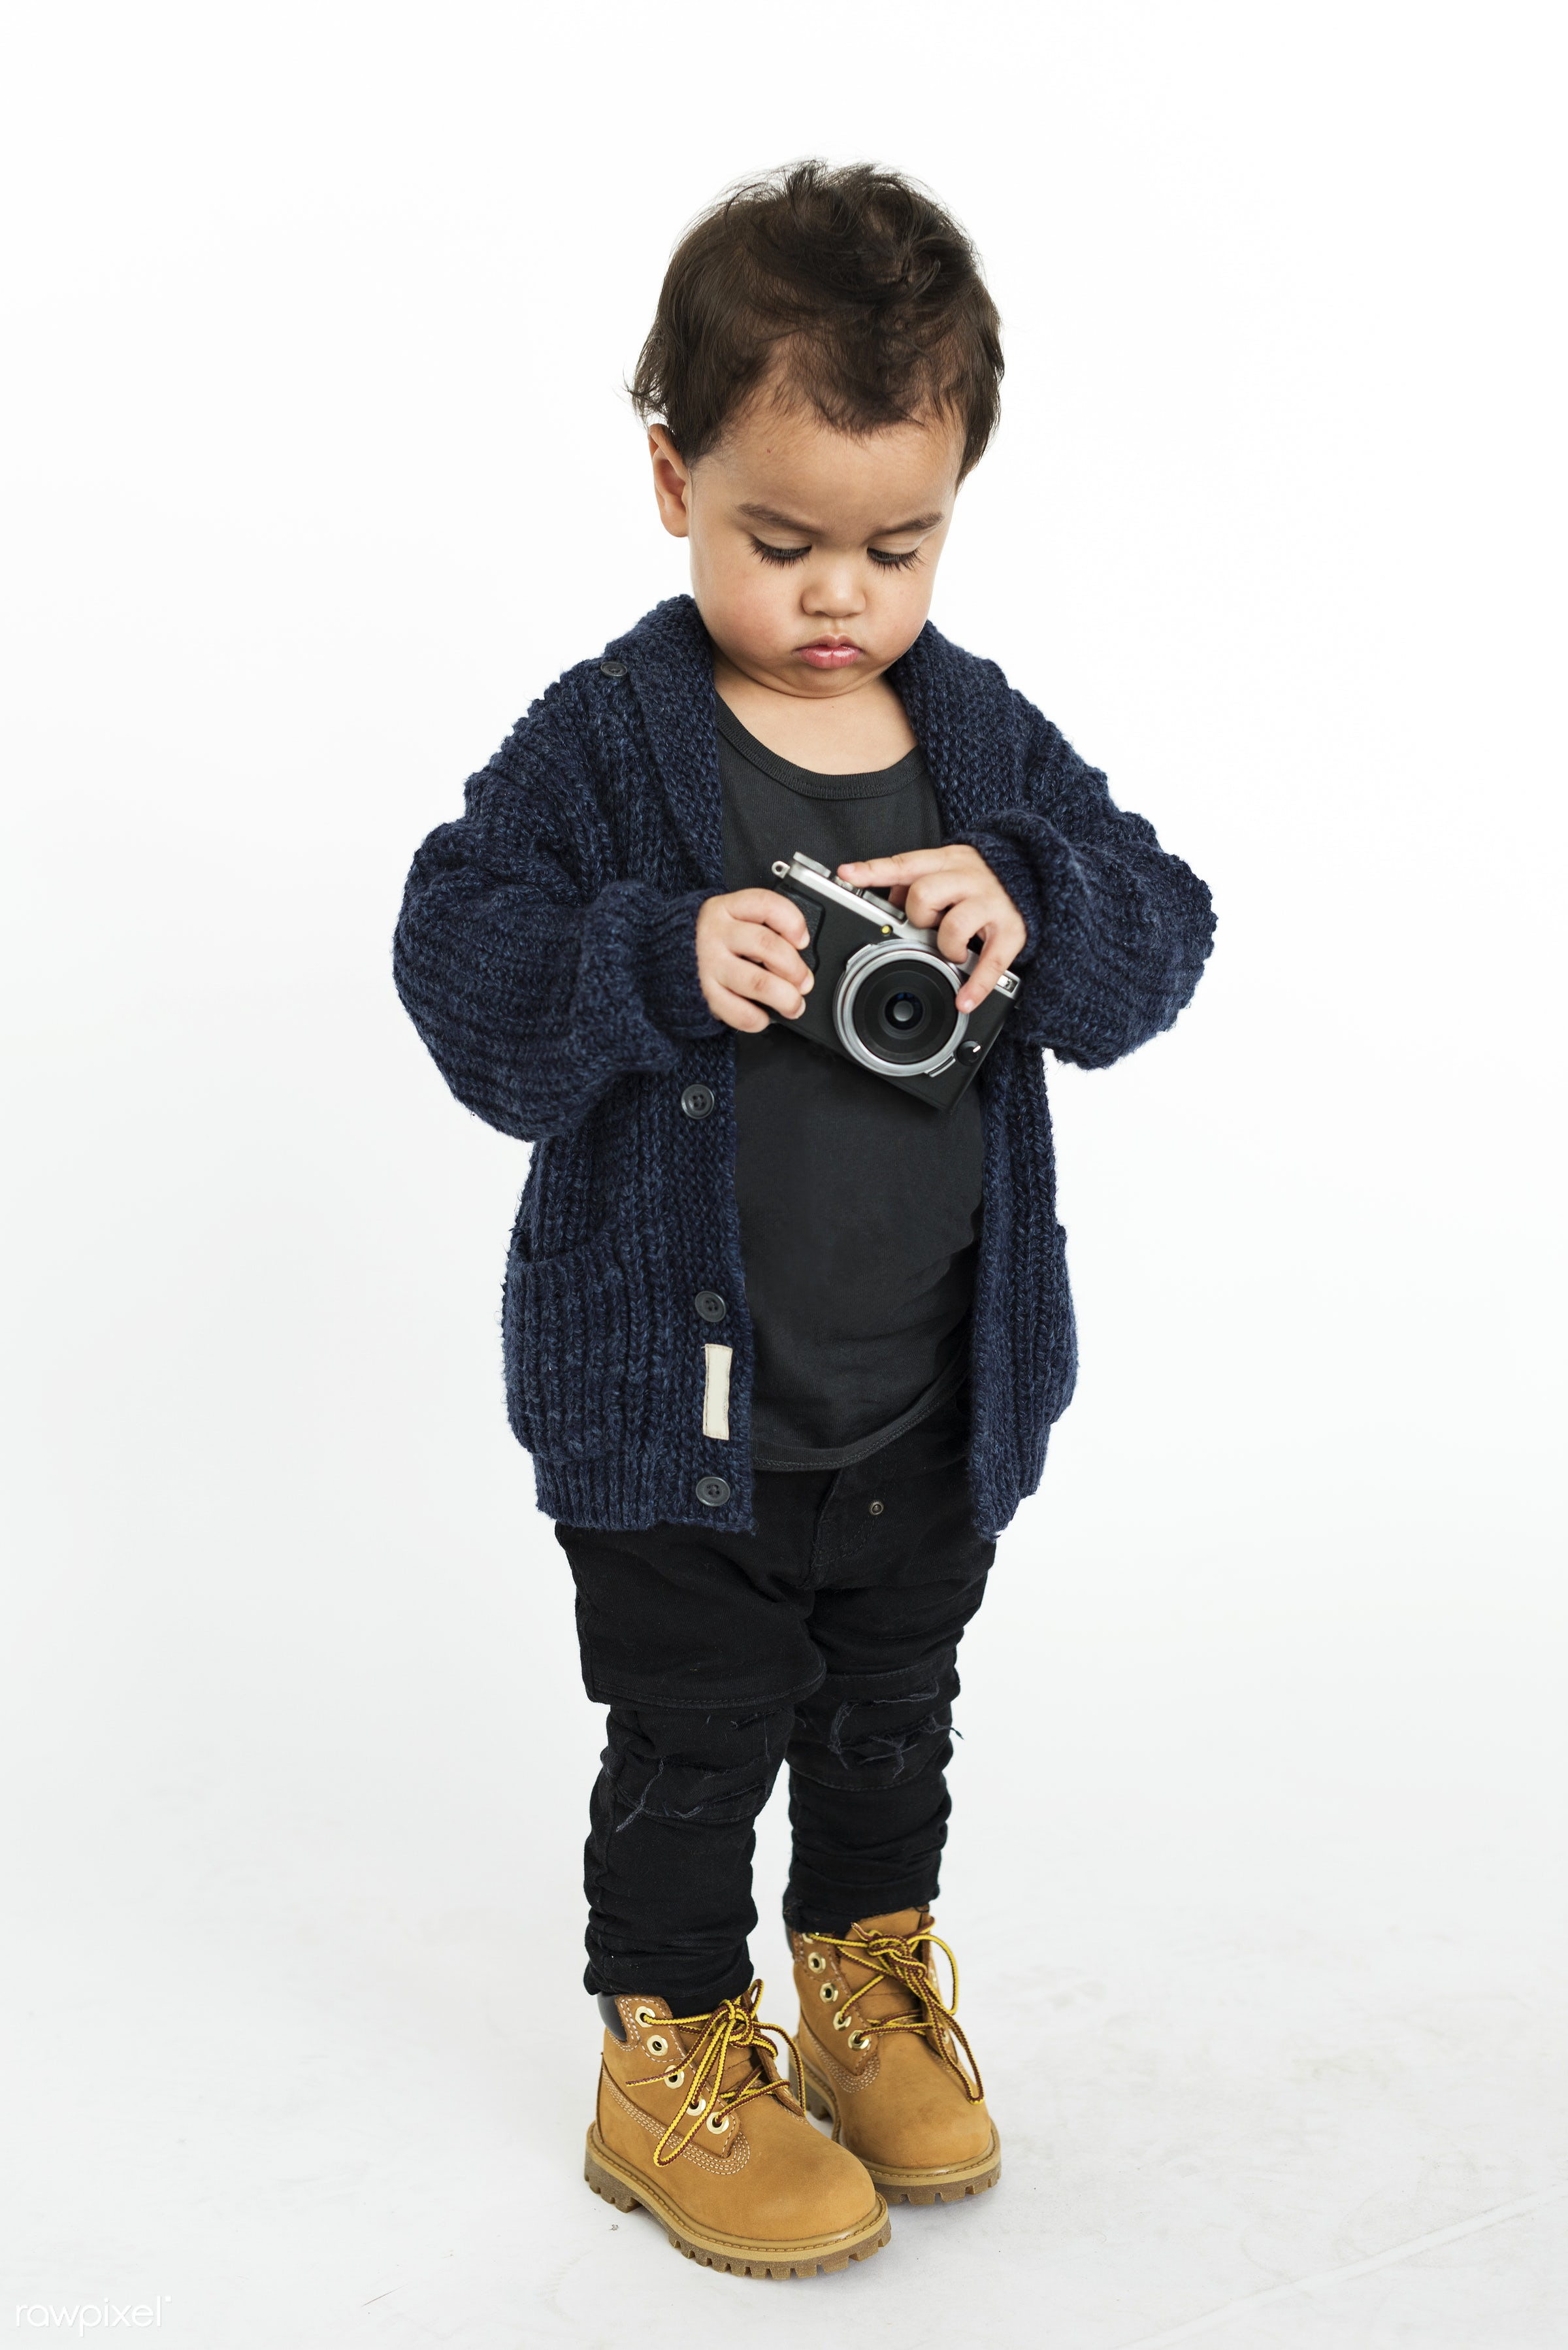 activity, adorable, adore, asian, boots, camera, candid, caucasian, child, childhood, children, cold, cute, diverse,...